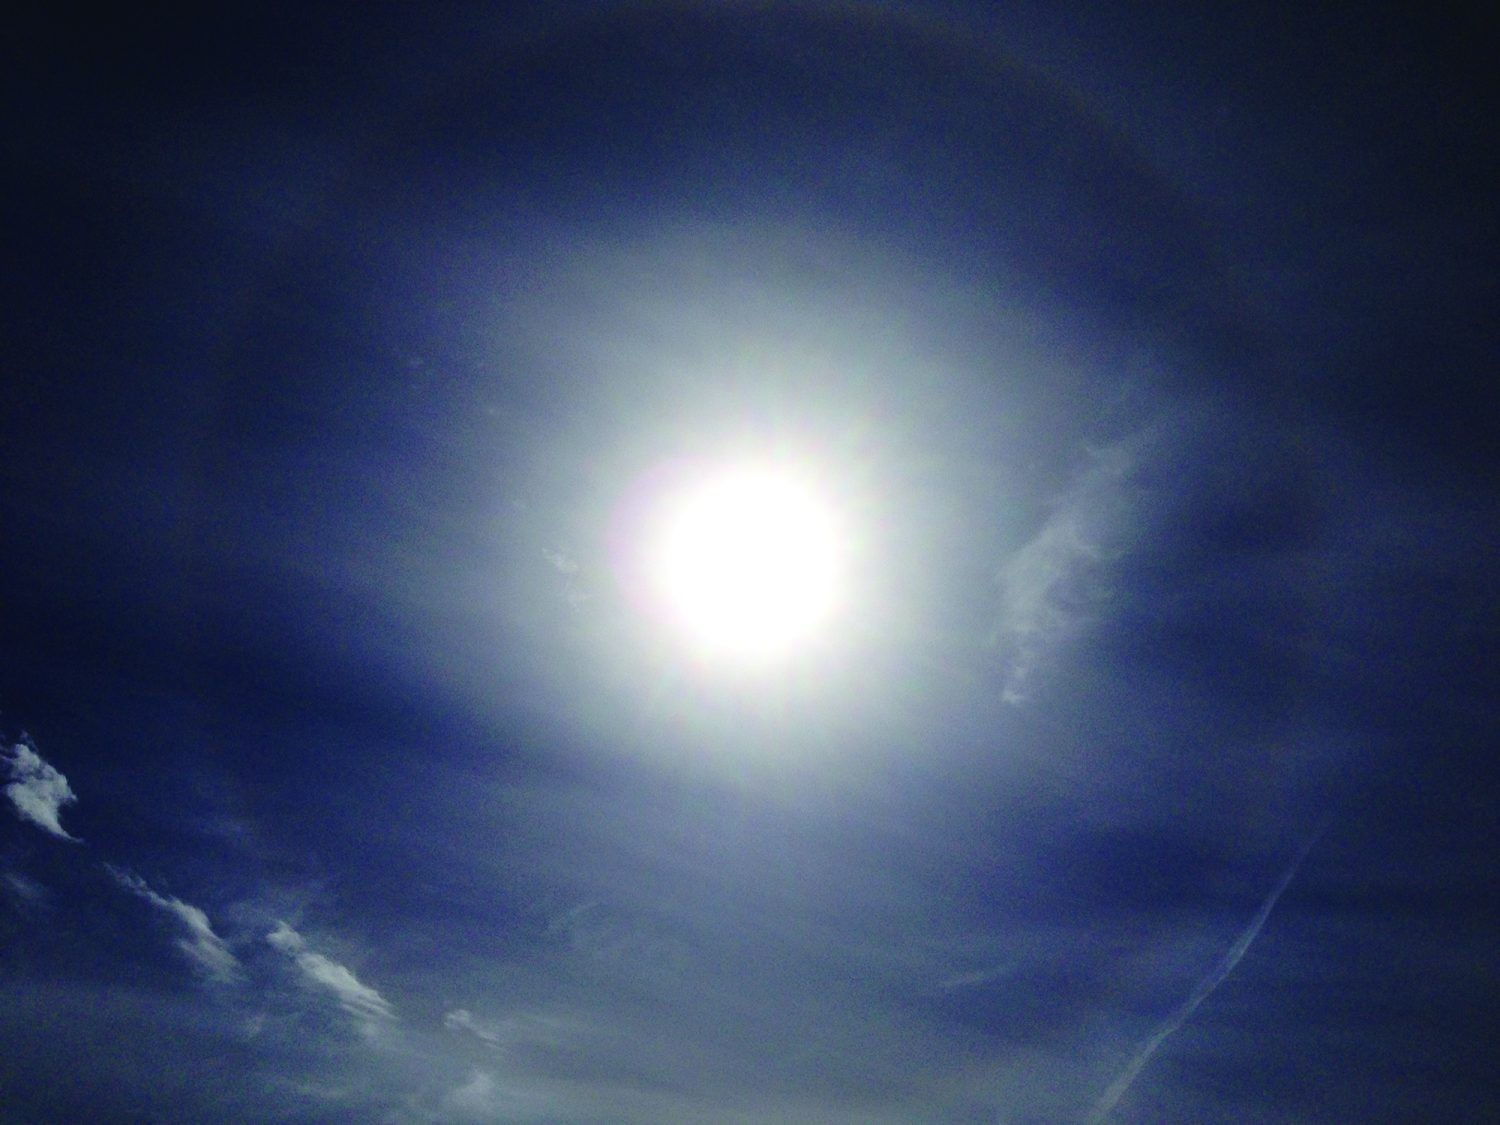 Also watch out for solar haloes, appearing as rings around the Sun; they're caused by ice particles refracting light. Credit: Pete Lawrence